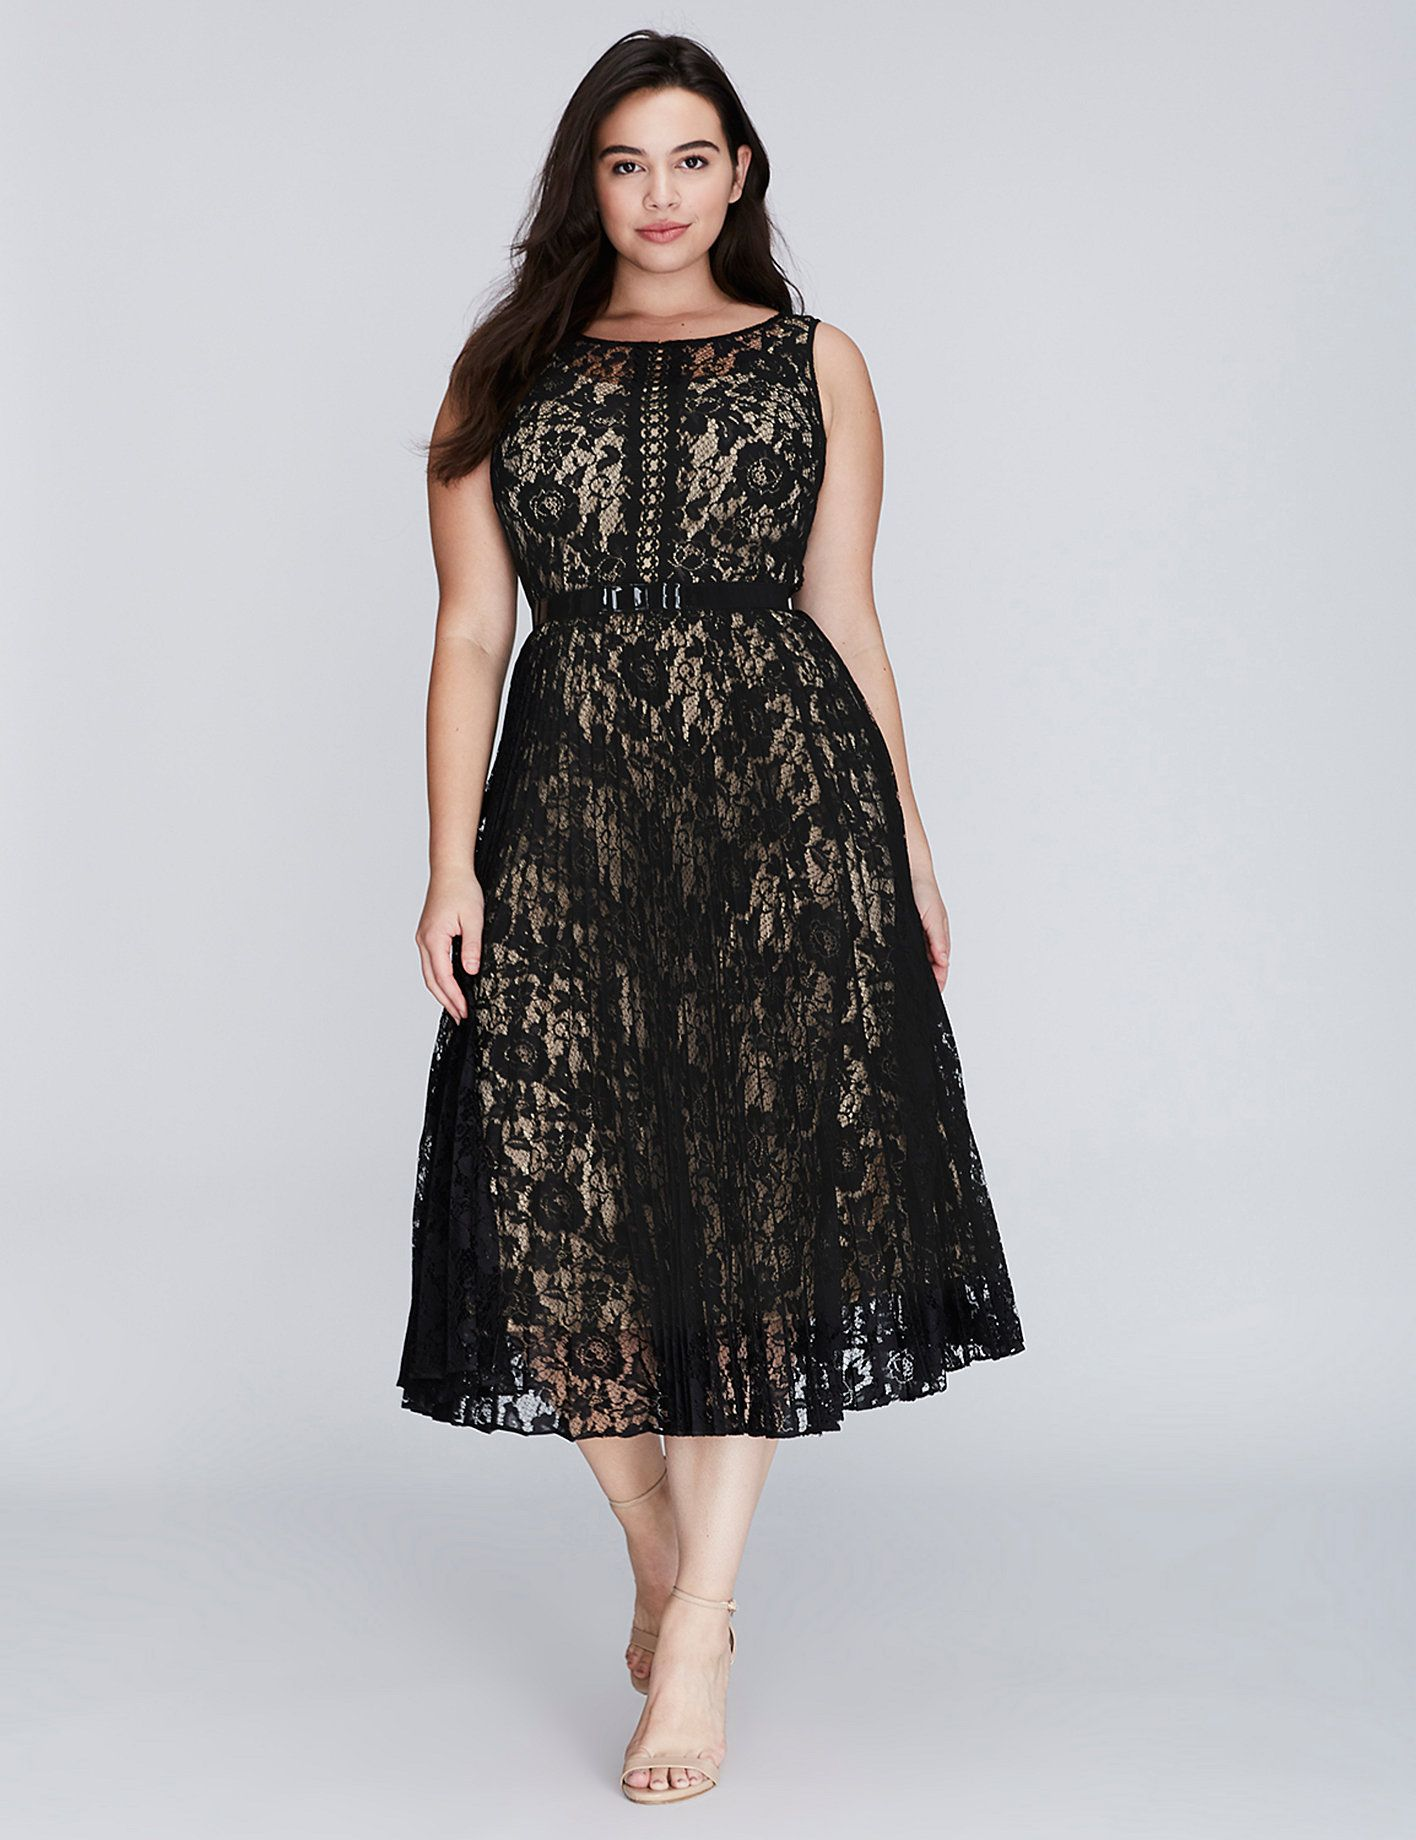 Clearance Plus Size Womens Dresses & Skirts Sale | Lane Bryant ...